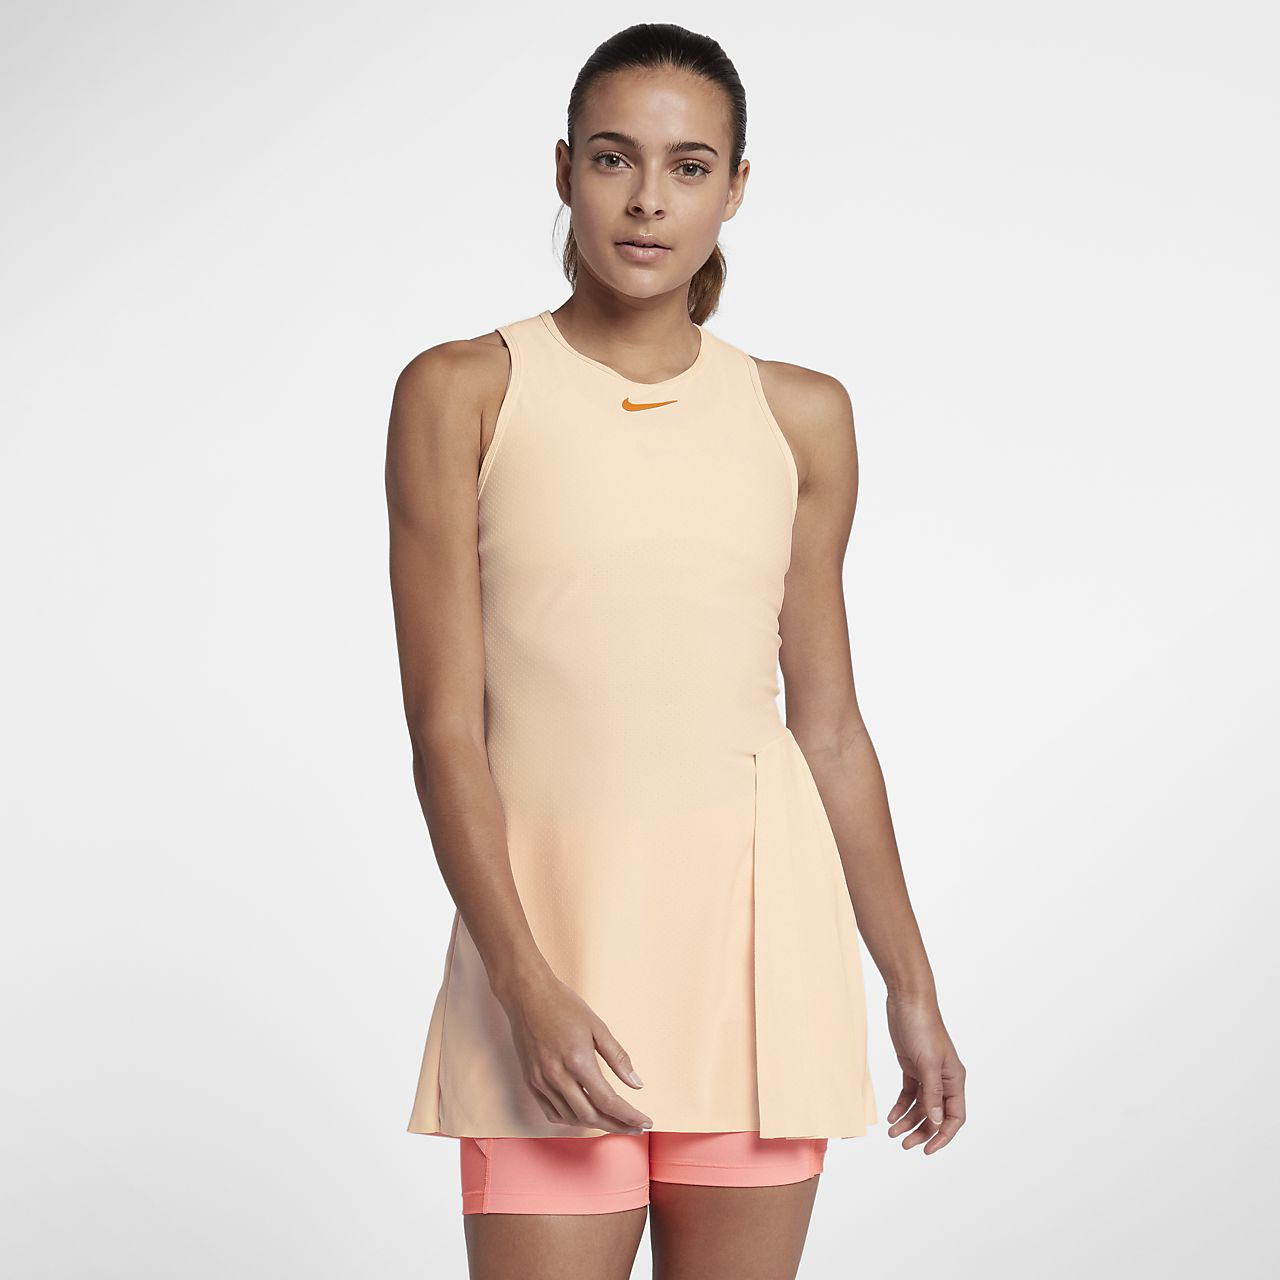 NikeCourt TechKnit Cool Slam Women's Tennis Dress